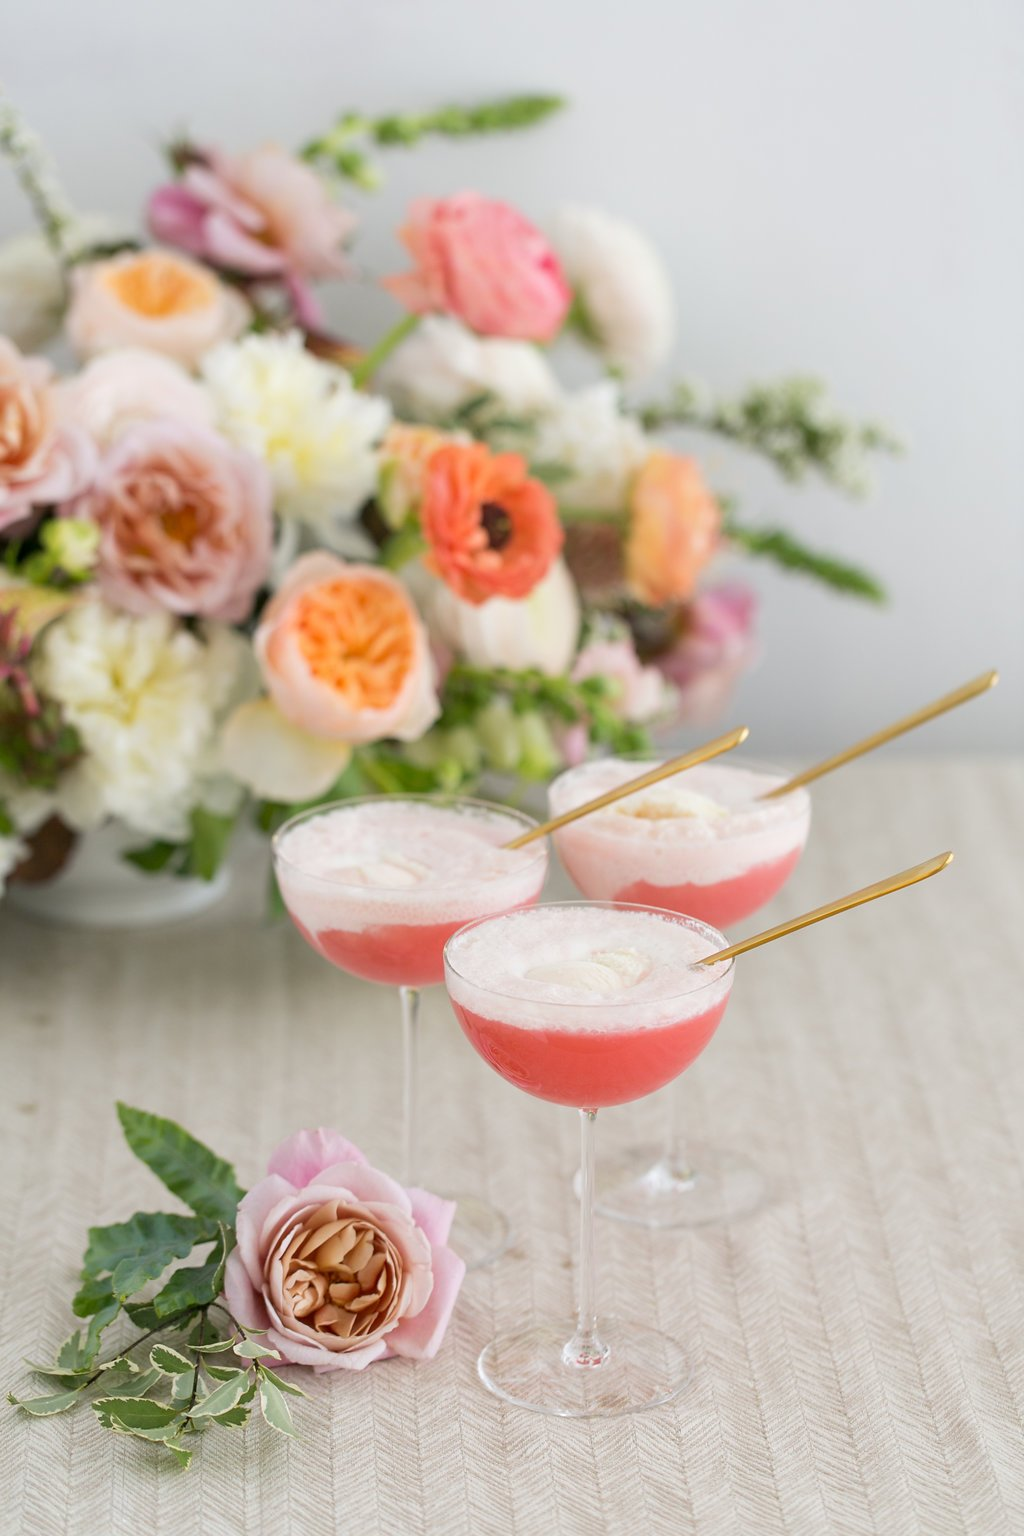 Three glasses of frose with gold spoons